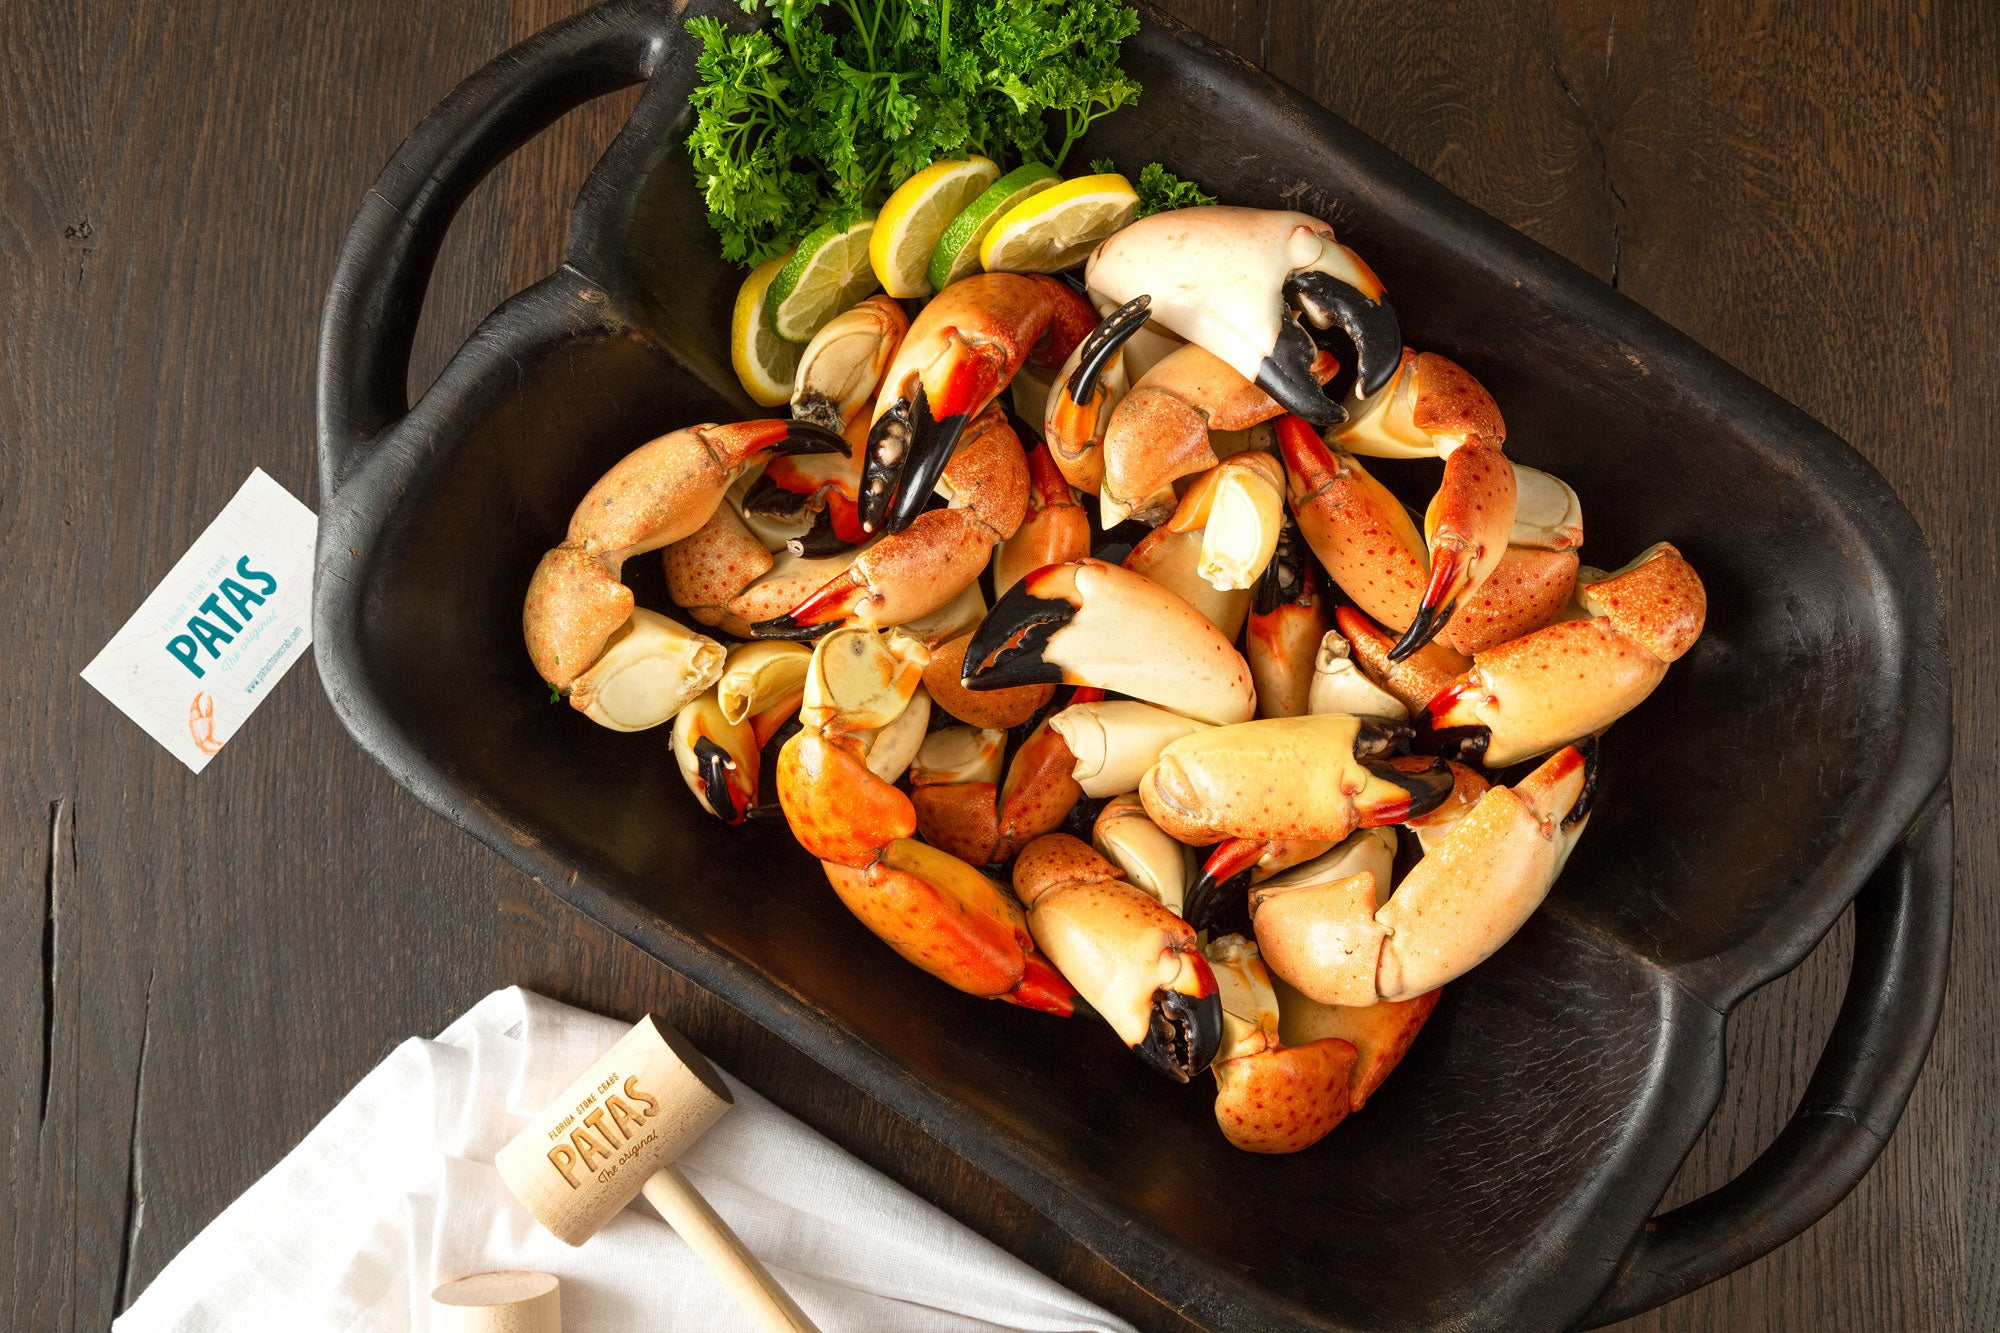 Stone Crab Meals Fresh From Florida Order Online with Overnight Delivery